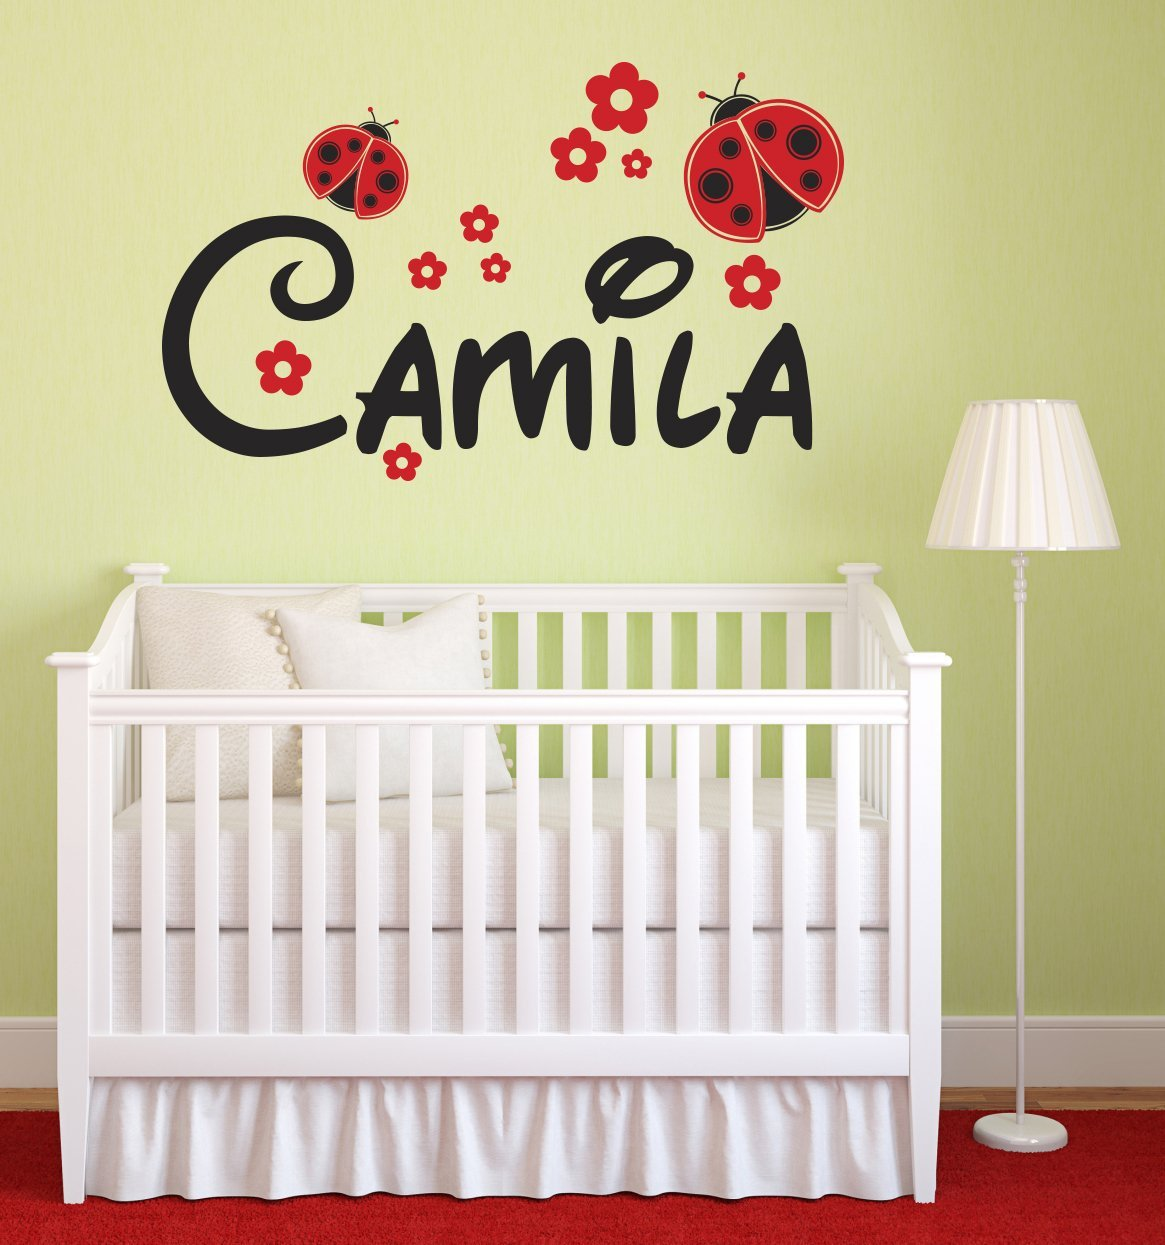 Cheap Ladybug Decals, find Ladybug Decals deals on line at Alibaba.com